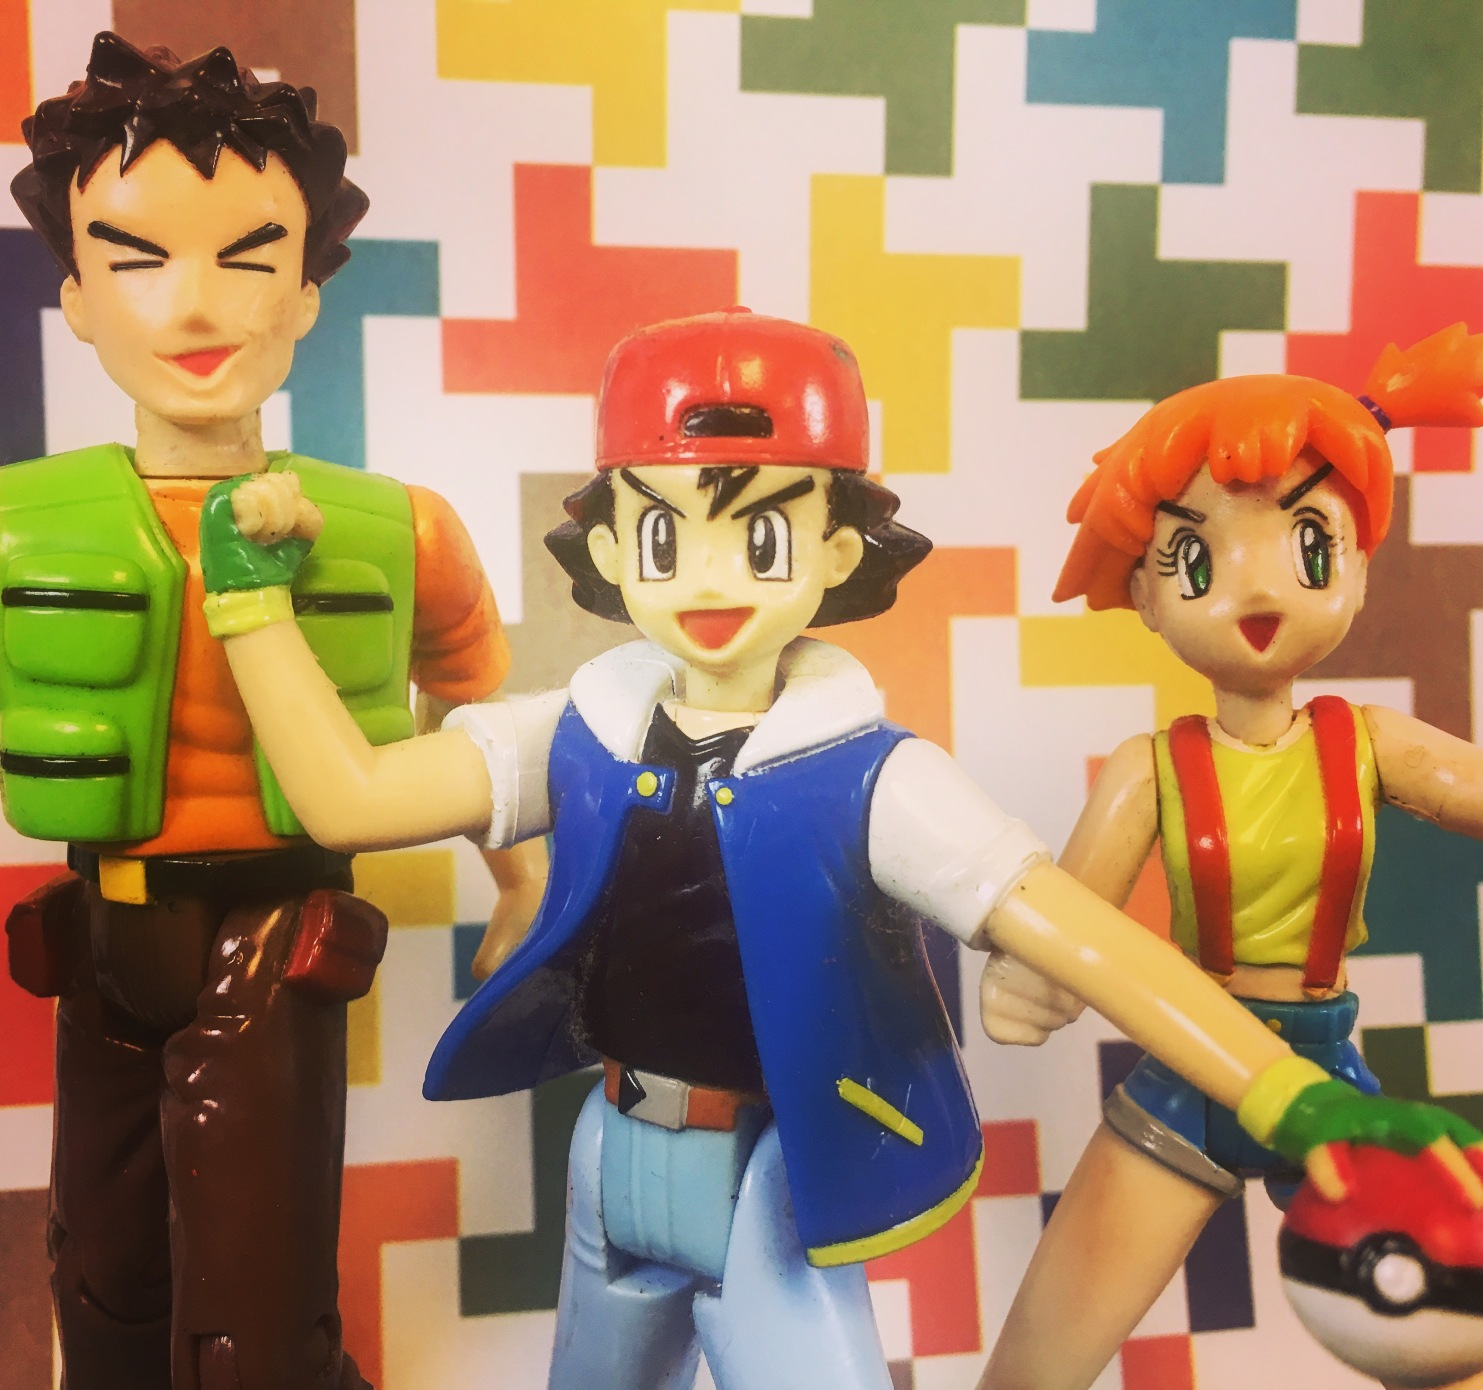 Hasbro TOMY Pokemon Trainers Ash Ketchum Misty Brock Figures Checklist Action Figure Database